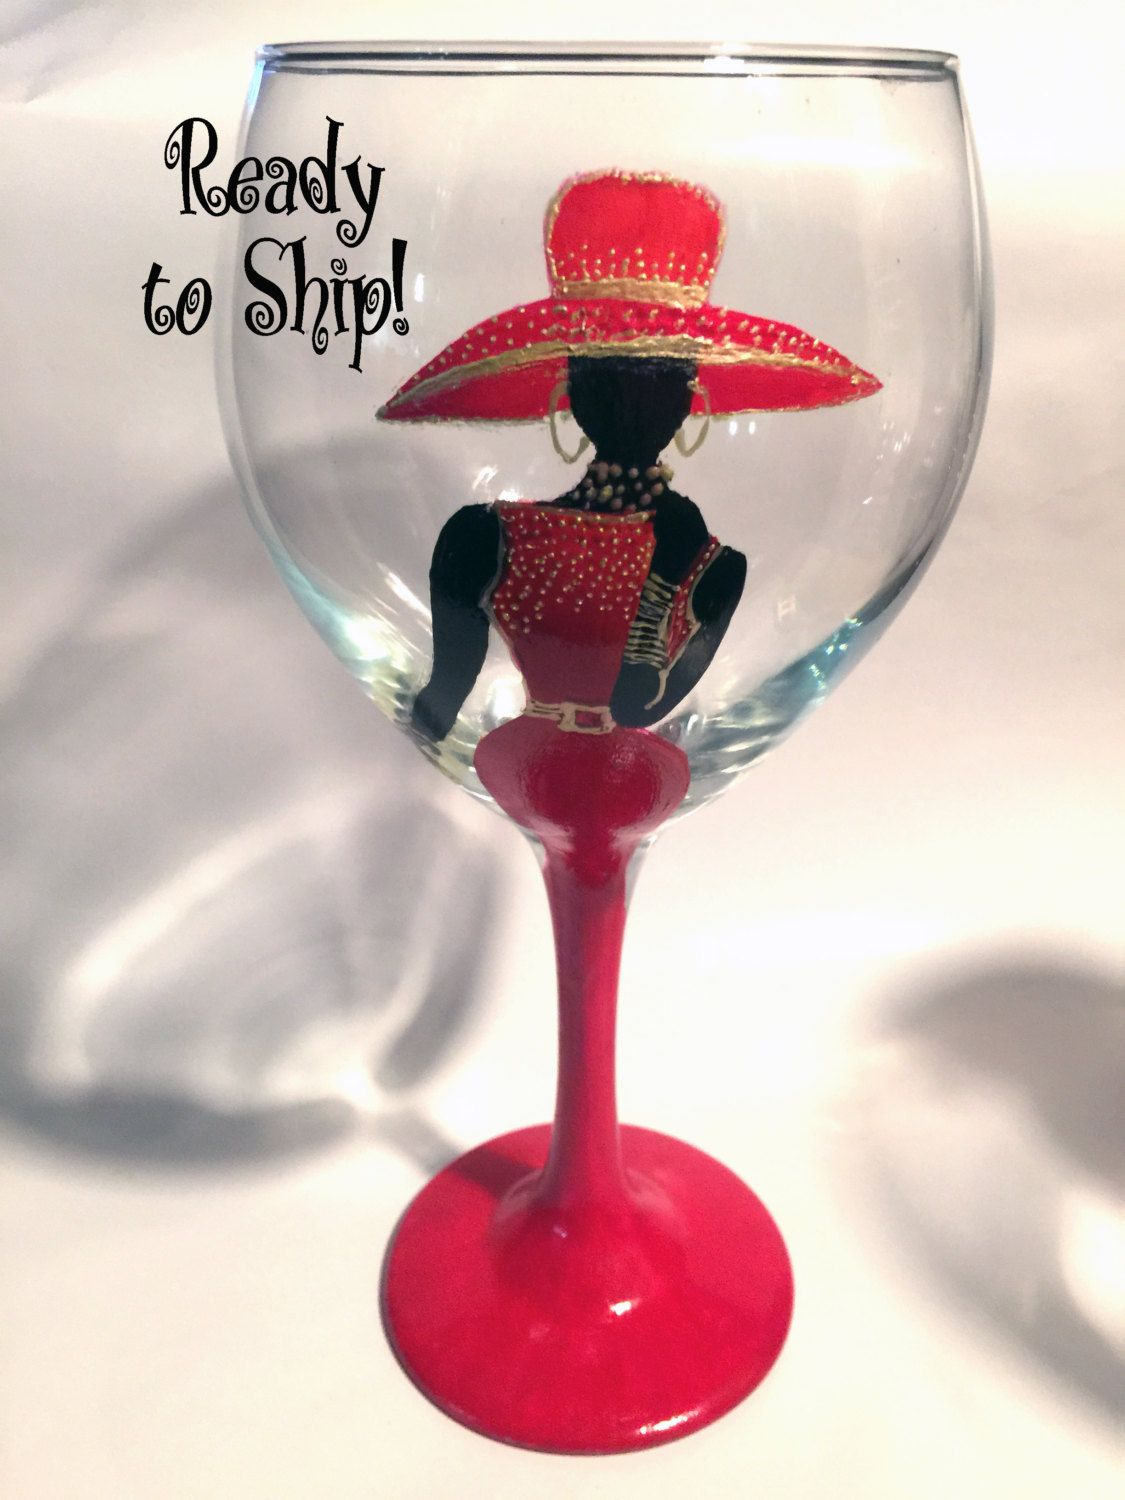 New A Fabulous Wine Glass For Dining And Entertaining Custom Hand Painted Gla Painting Glassware Hand Painted Glassware Hand Painted Wine Glasses